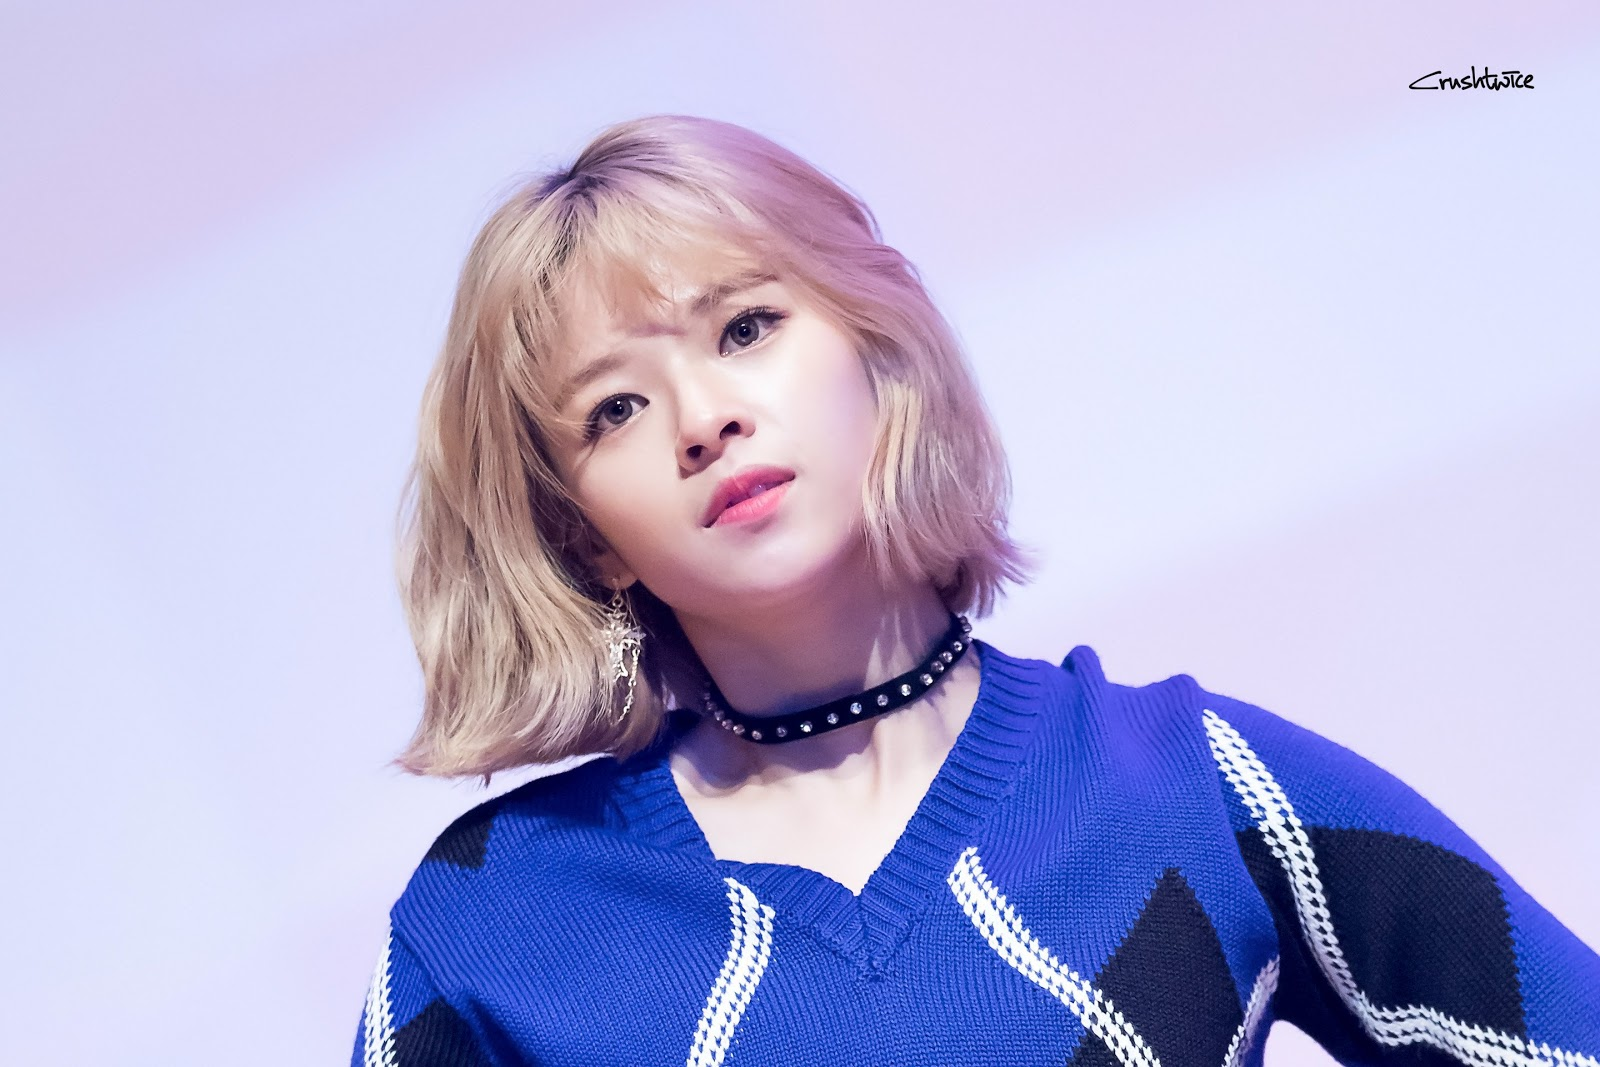 Jeongyeon S Hair Is The Longest It S Ever Been Since She